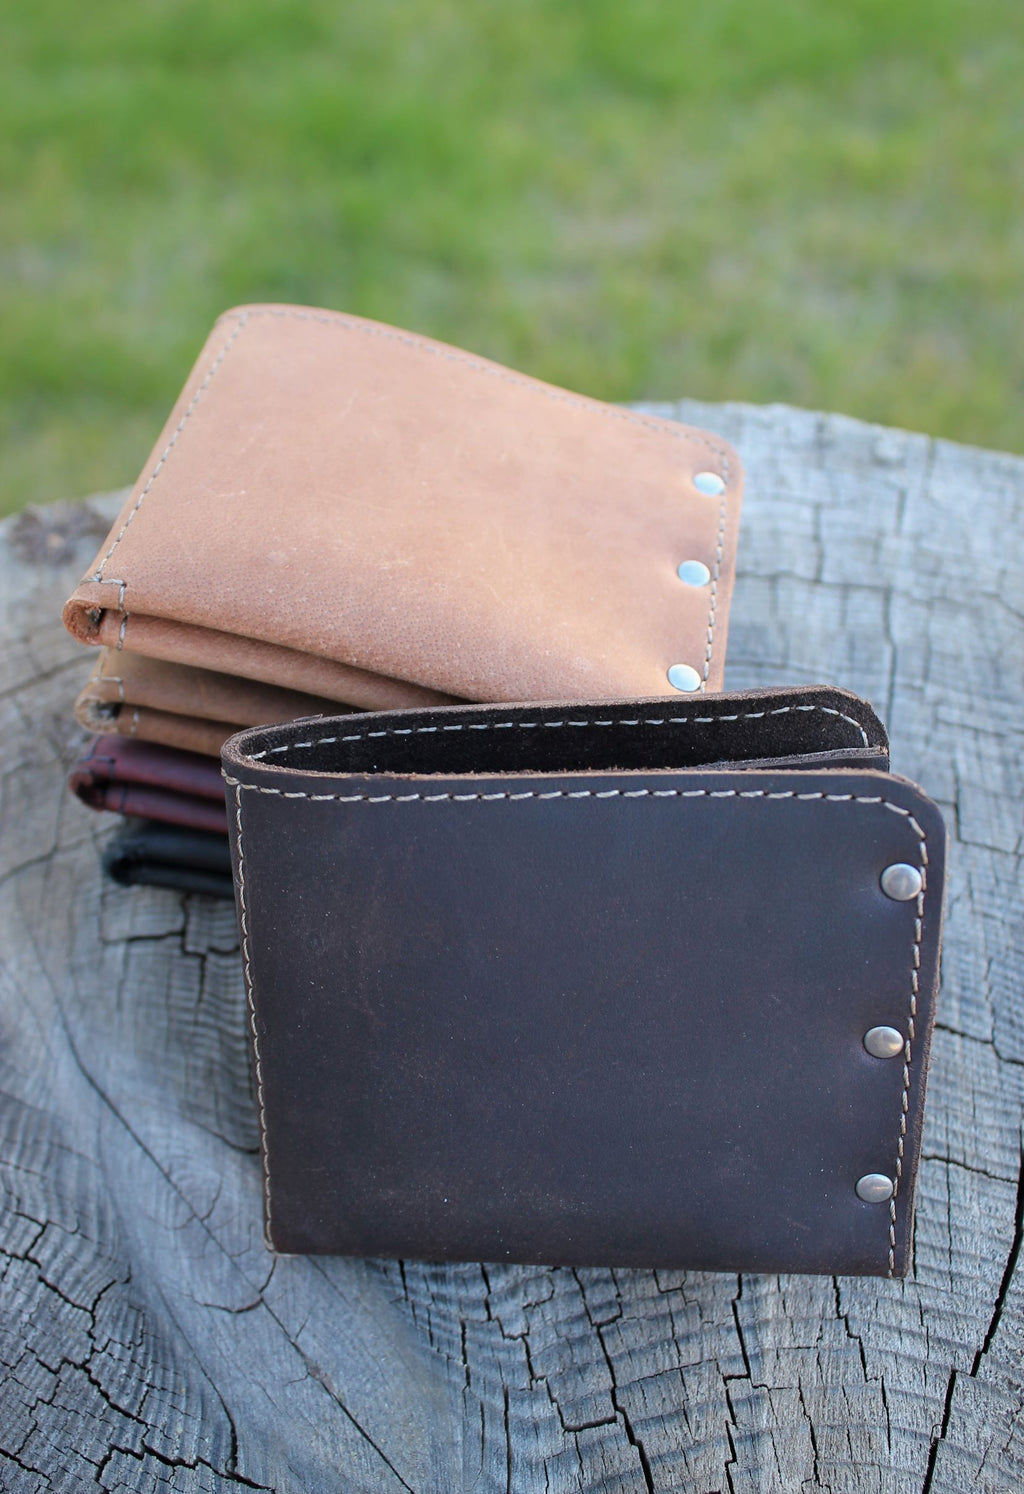 Leather store: Minimalist Leather Men's Monogram Personalized Wallet